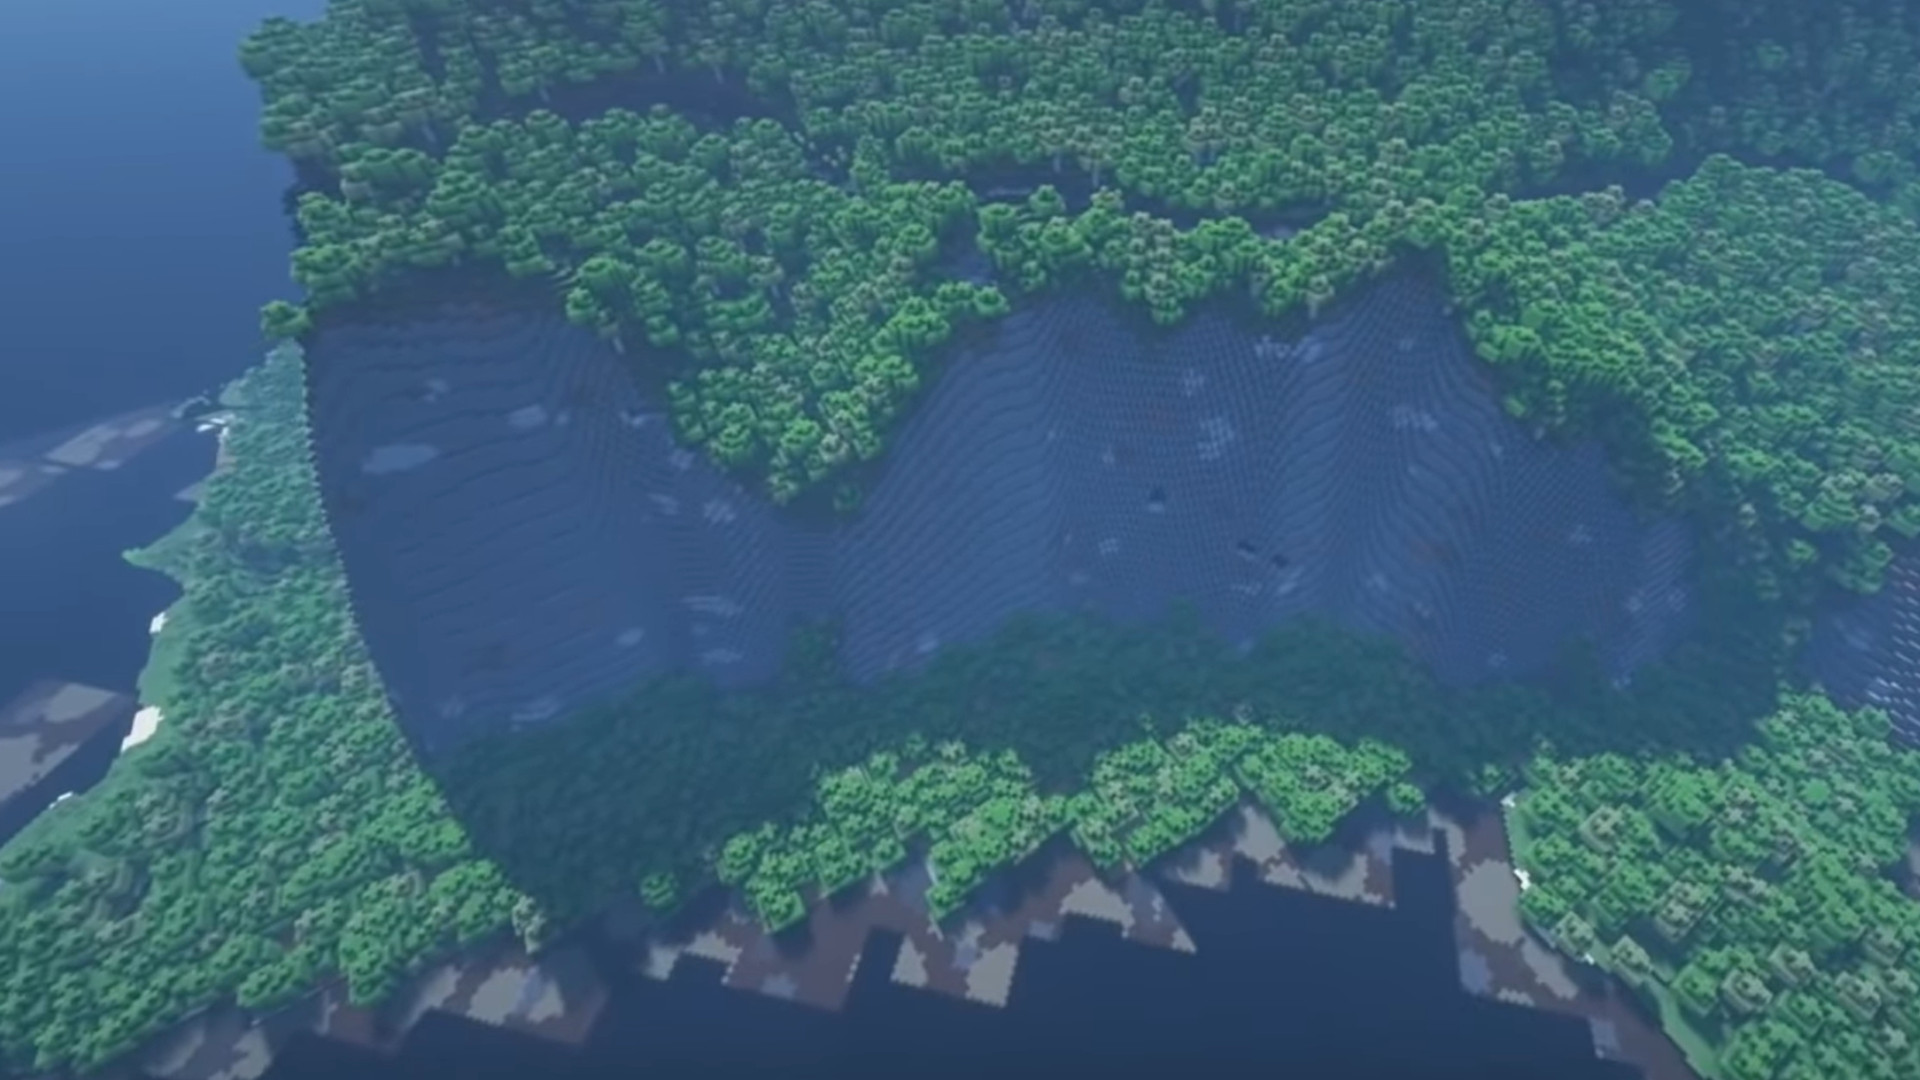 This is the entire Earth in Minecraft, at 100:100 scale – now modders